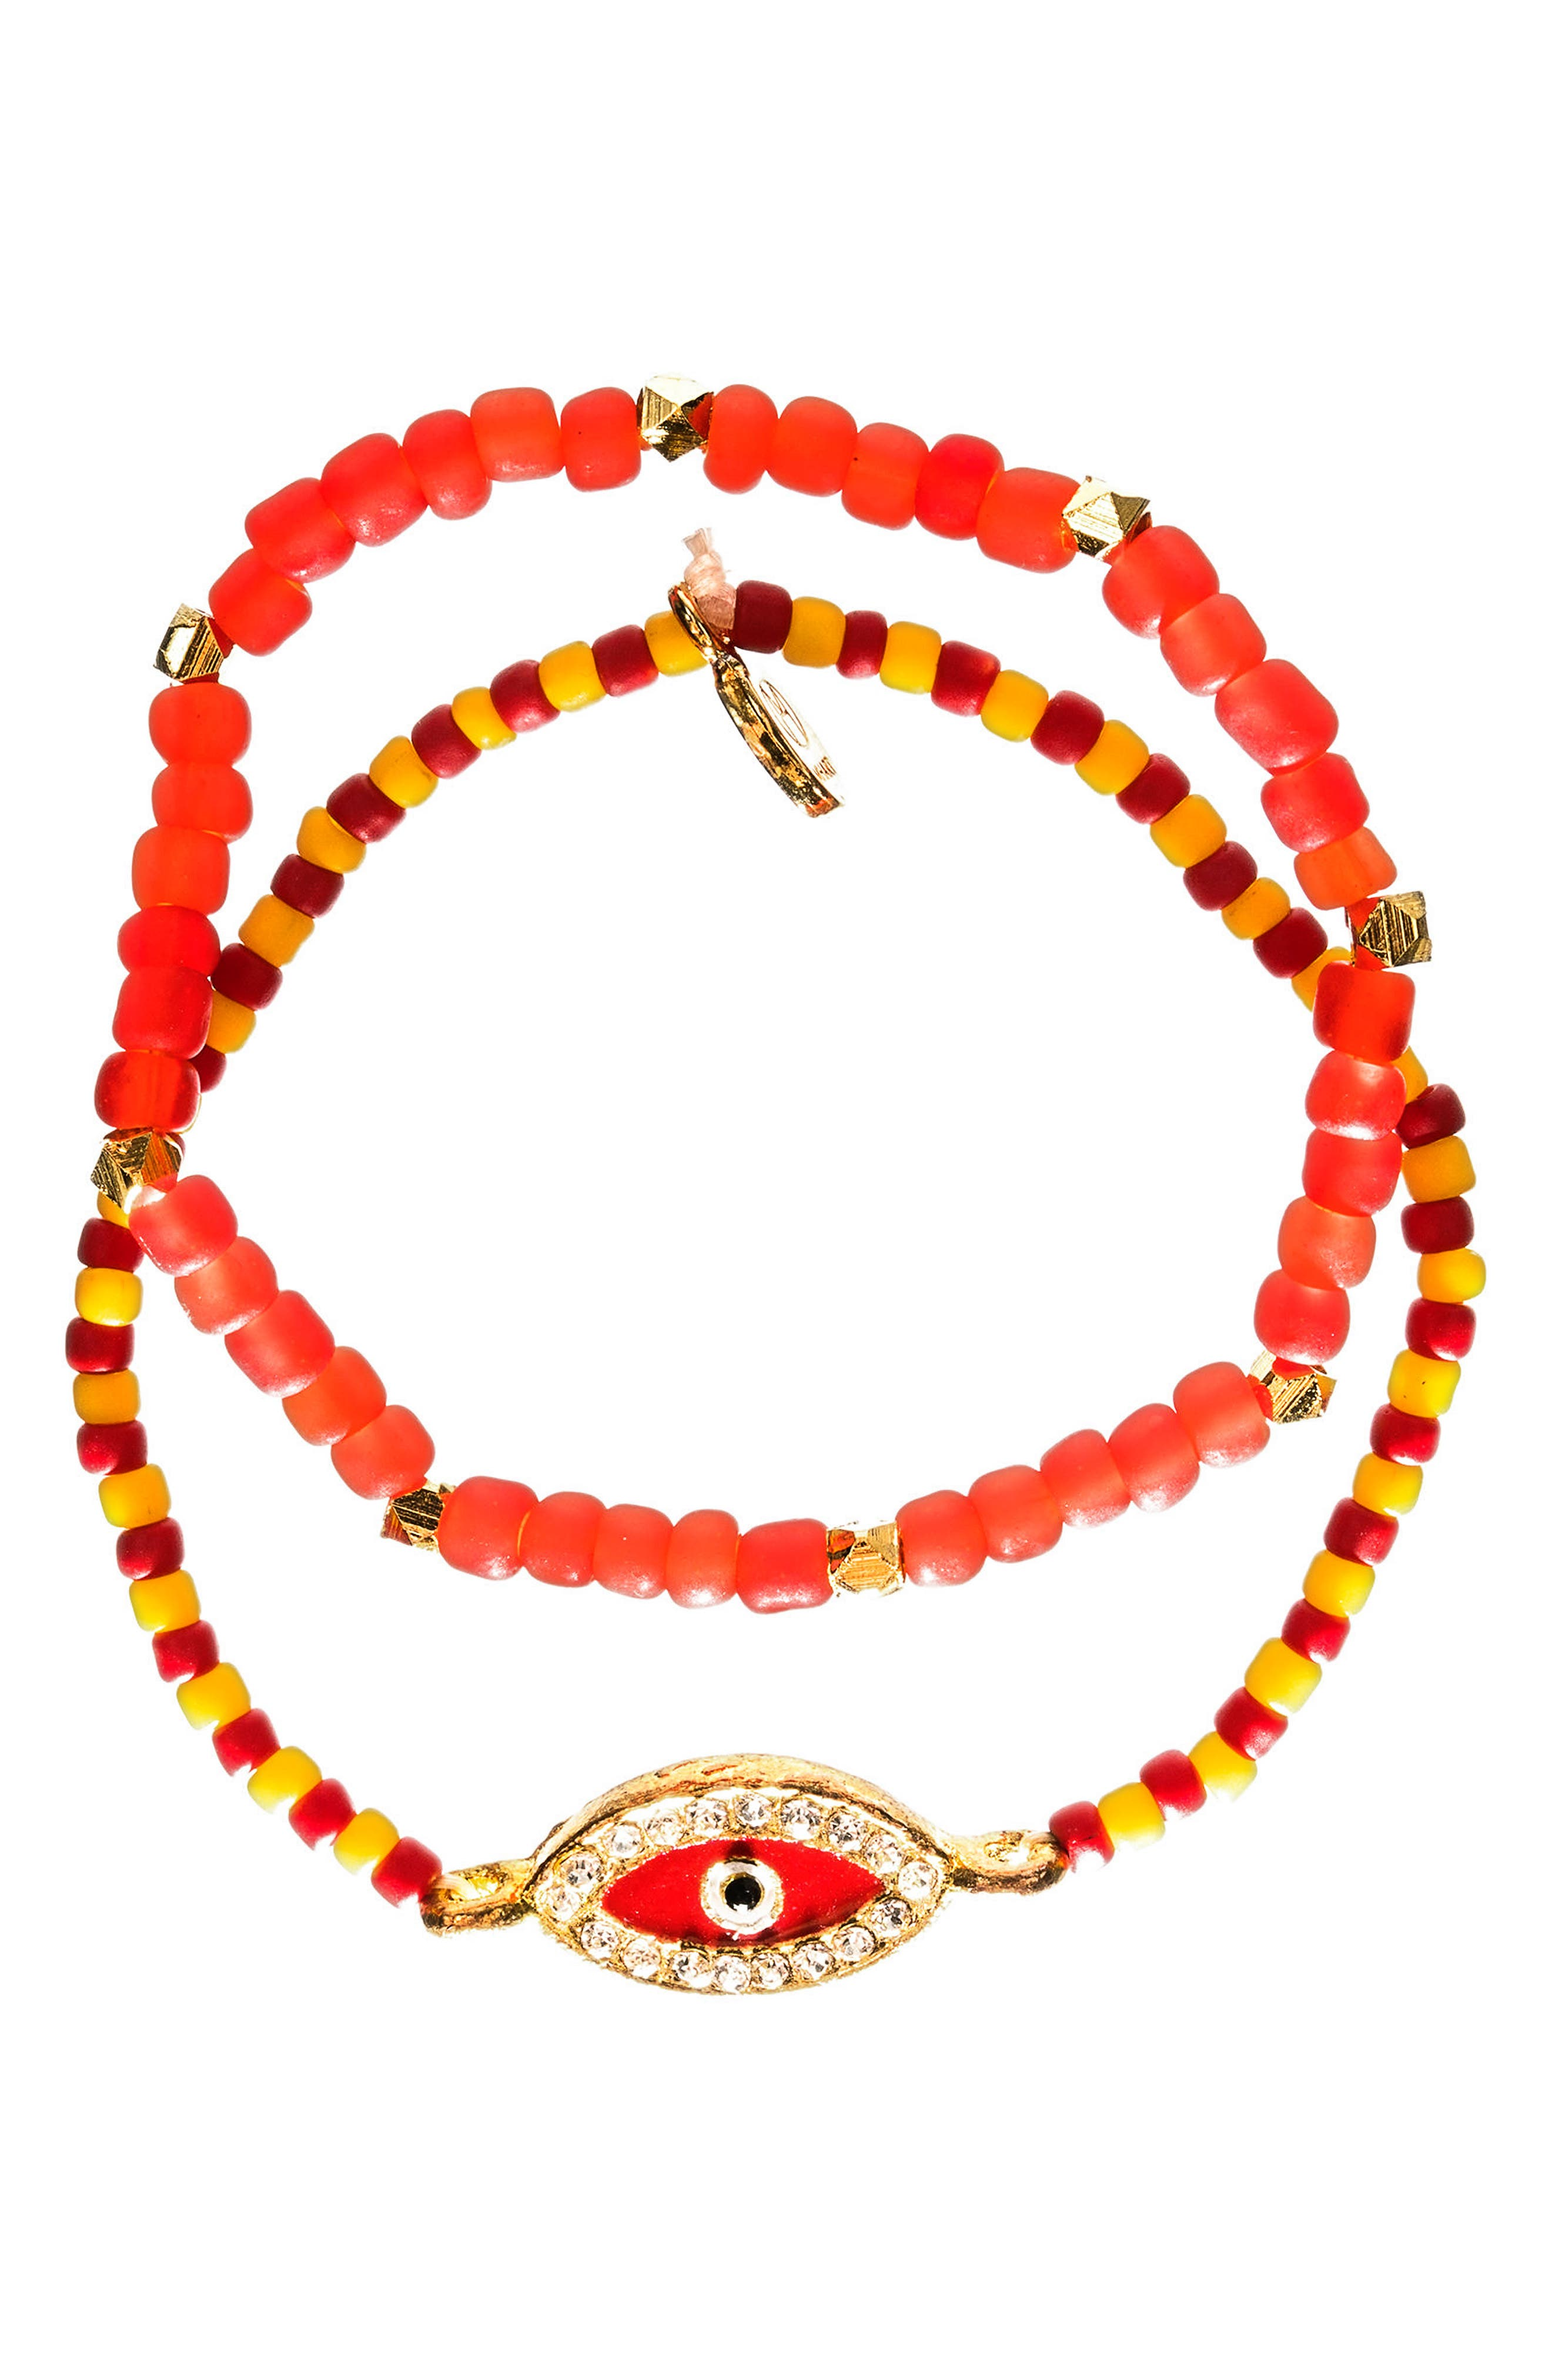 MHART Evil Eye Set of 2 Beaded Stretch Bracelets